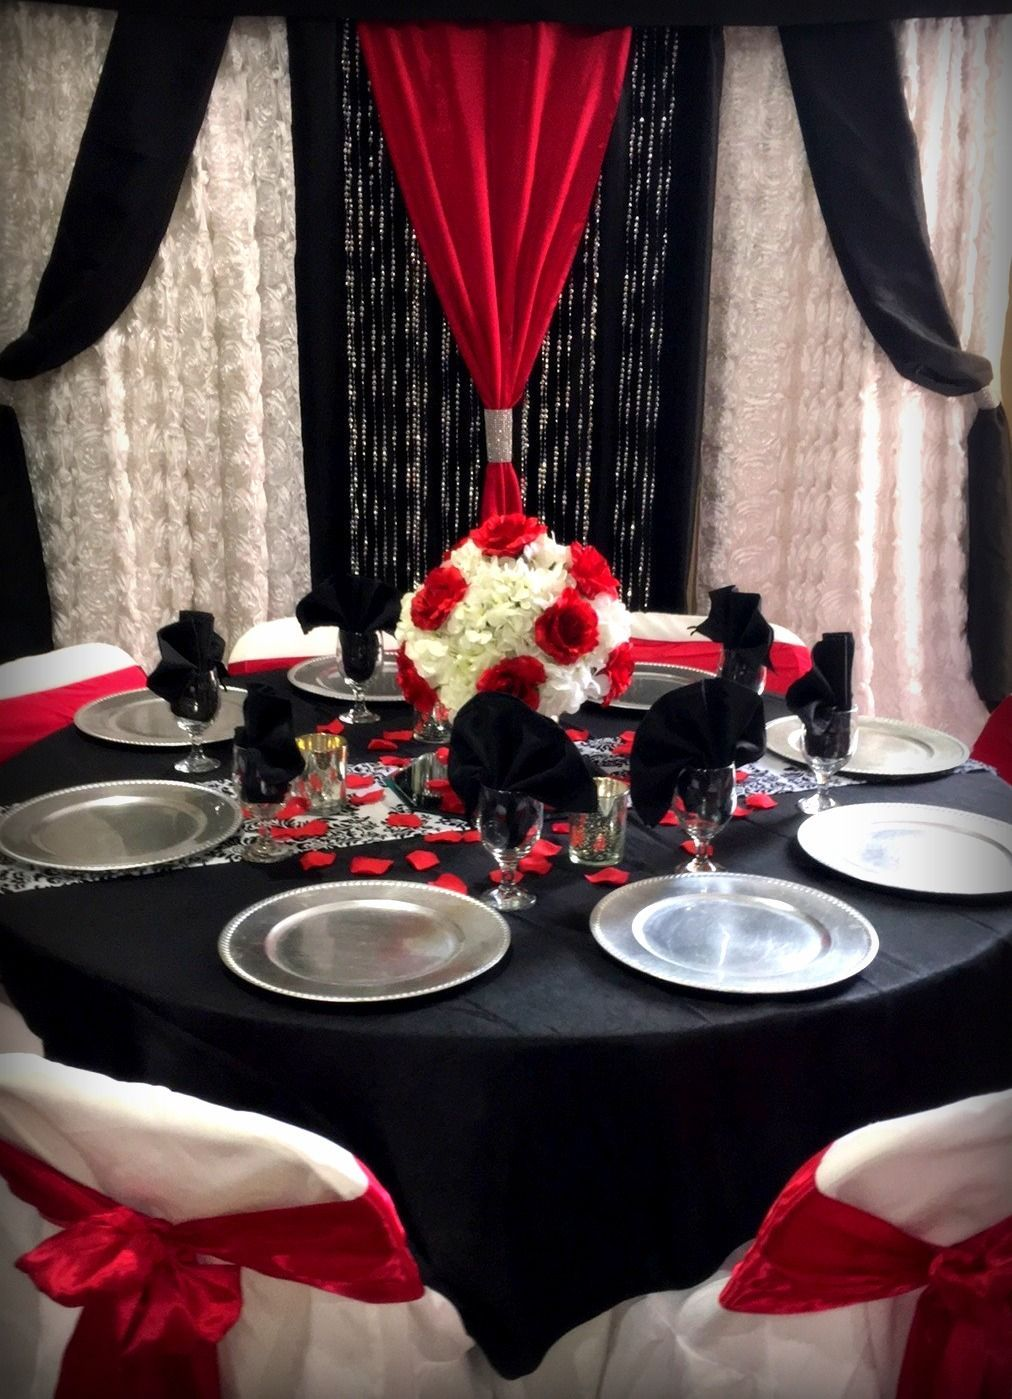 Red White And Black Wedding Table Decorations Wedding Decoration As Re In 2020 Red And Black Table Decorations Black Wedding Table Decorations Red Wedding Decorations